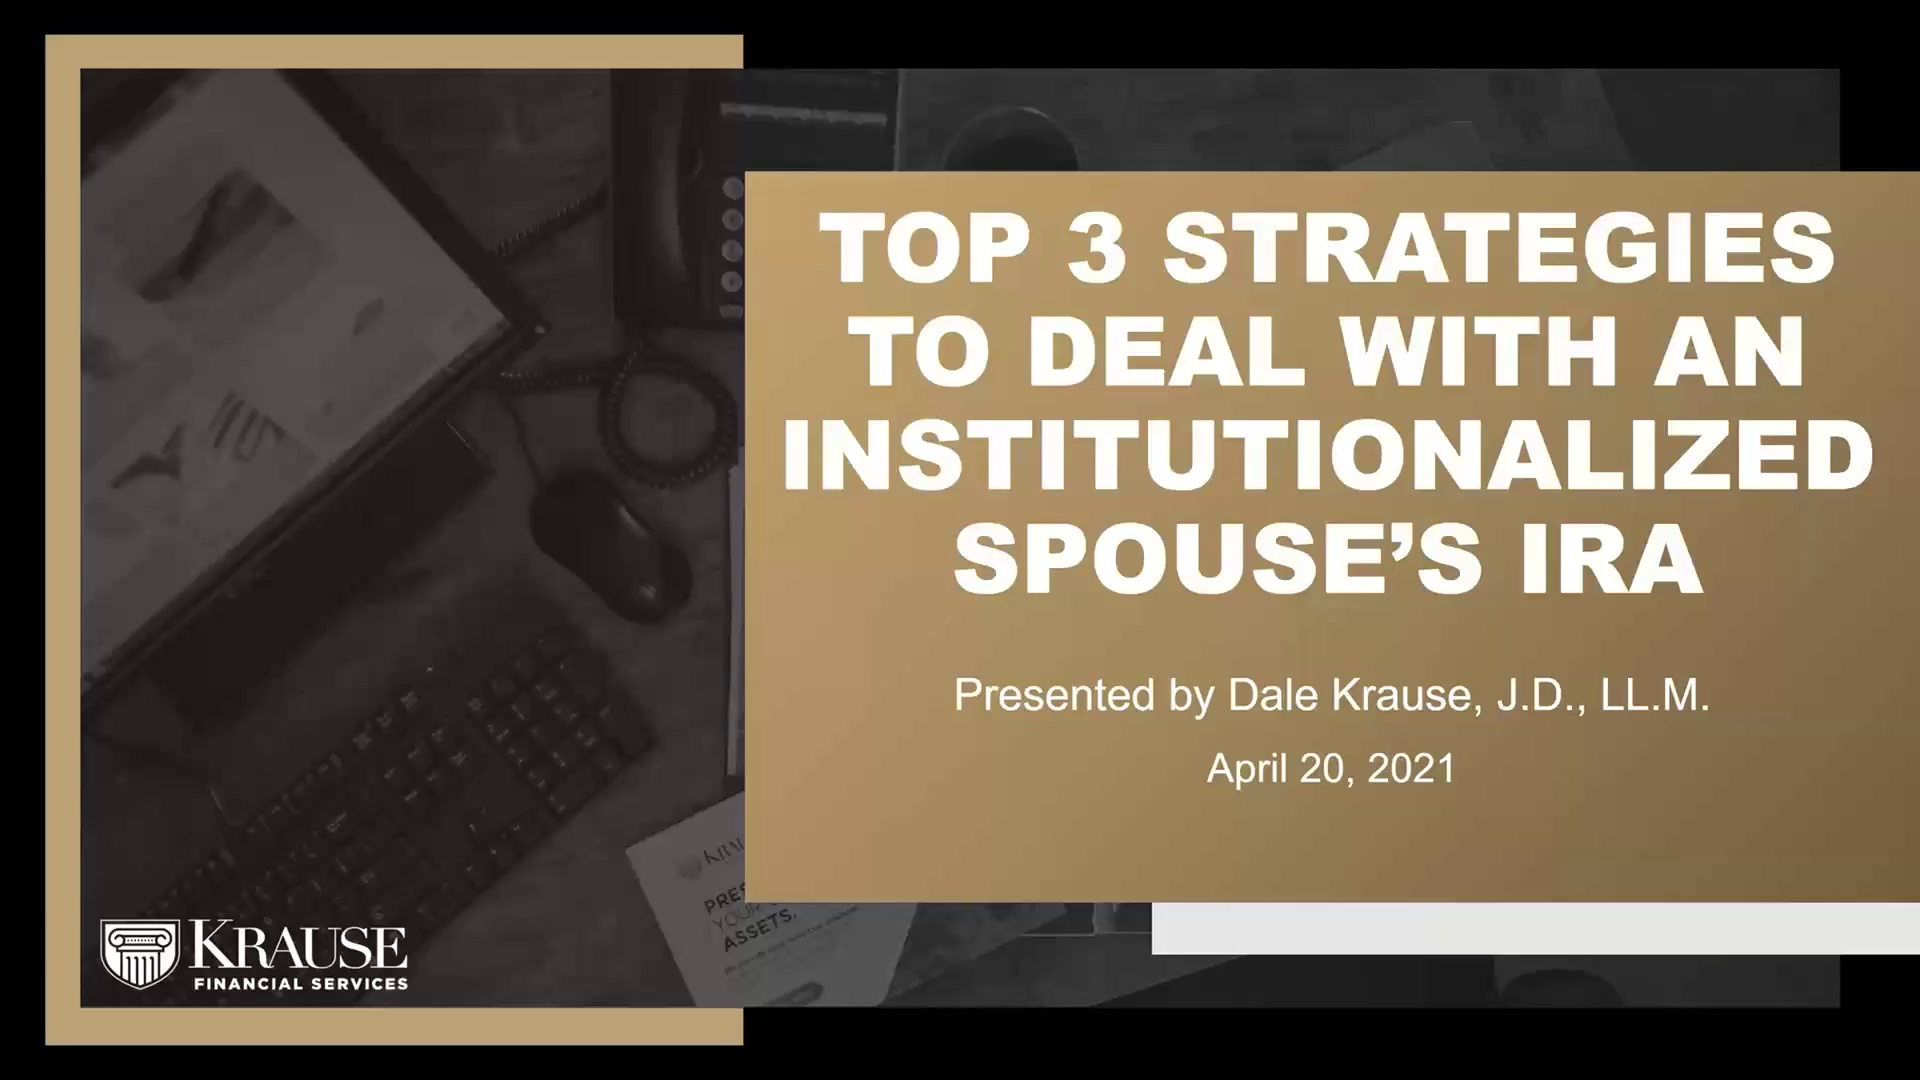 Top 3 Strategies to Deal with an Institutionalized Spouse's IRA